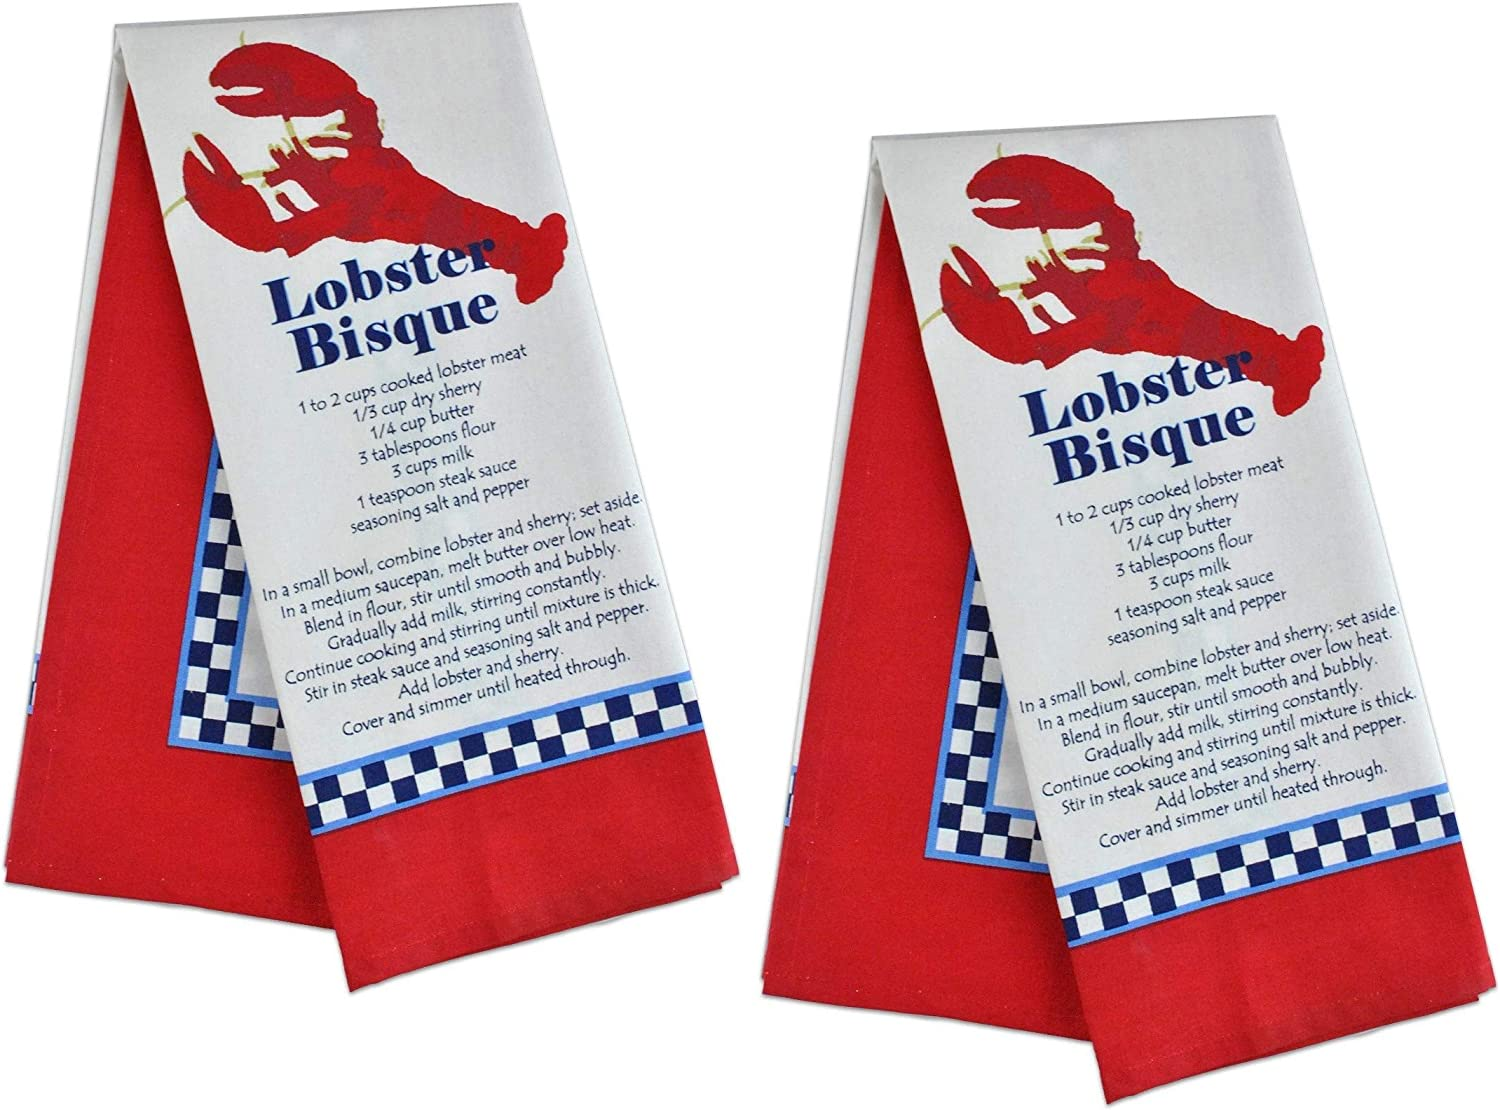 DII Lobster Bisque Printed Kitchen Tea Towels, Set of 2 Lobster Bisque Recipe Dish Towels, Flat Weave 100% Cotton for Cooking, Baking, Dishes, Nautical Beach House Seashore Lobster Kitchen Decor